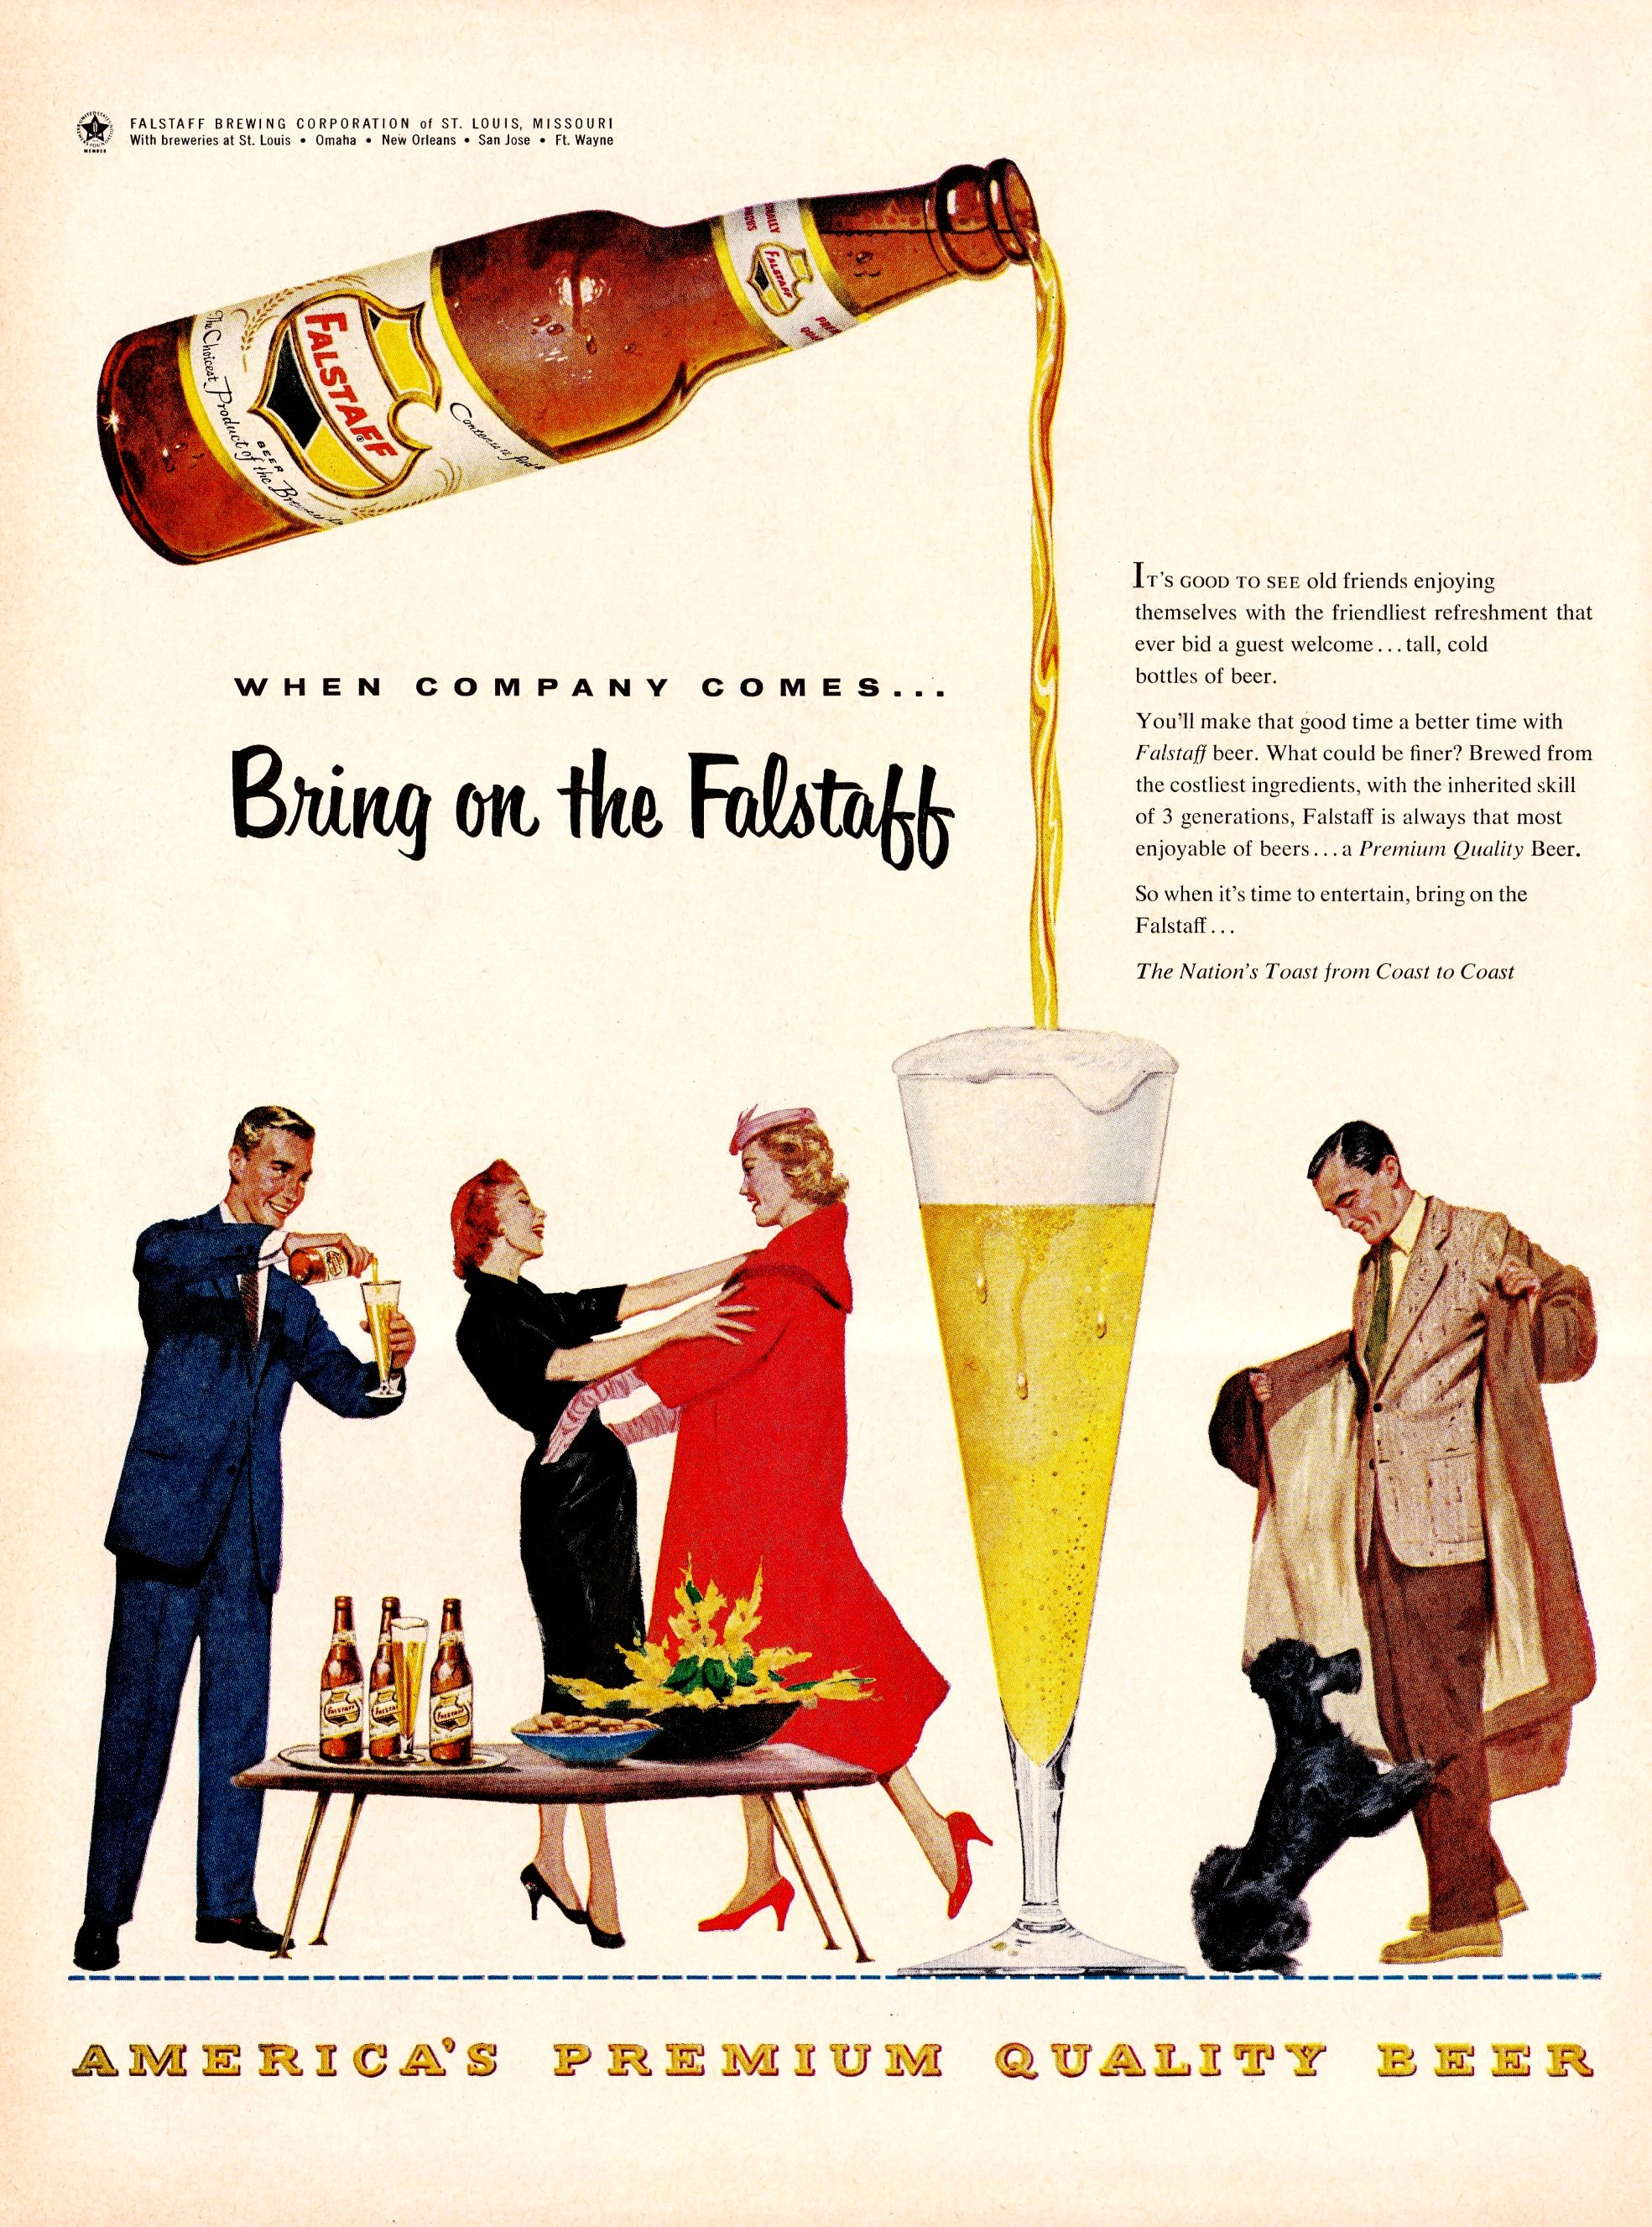 Falstaff Brewing Corporation - published in Life - February 7, 1955